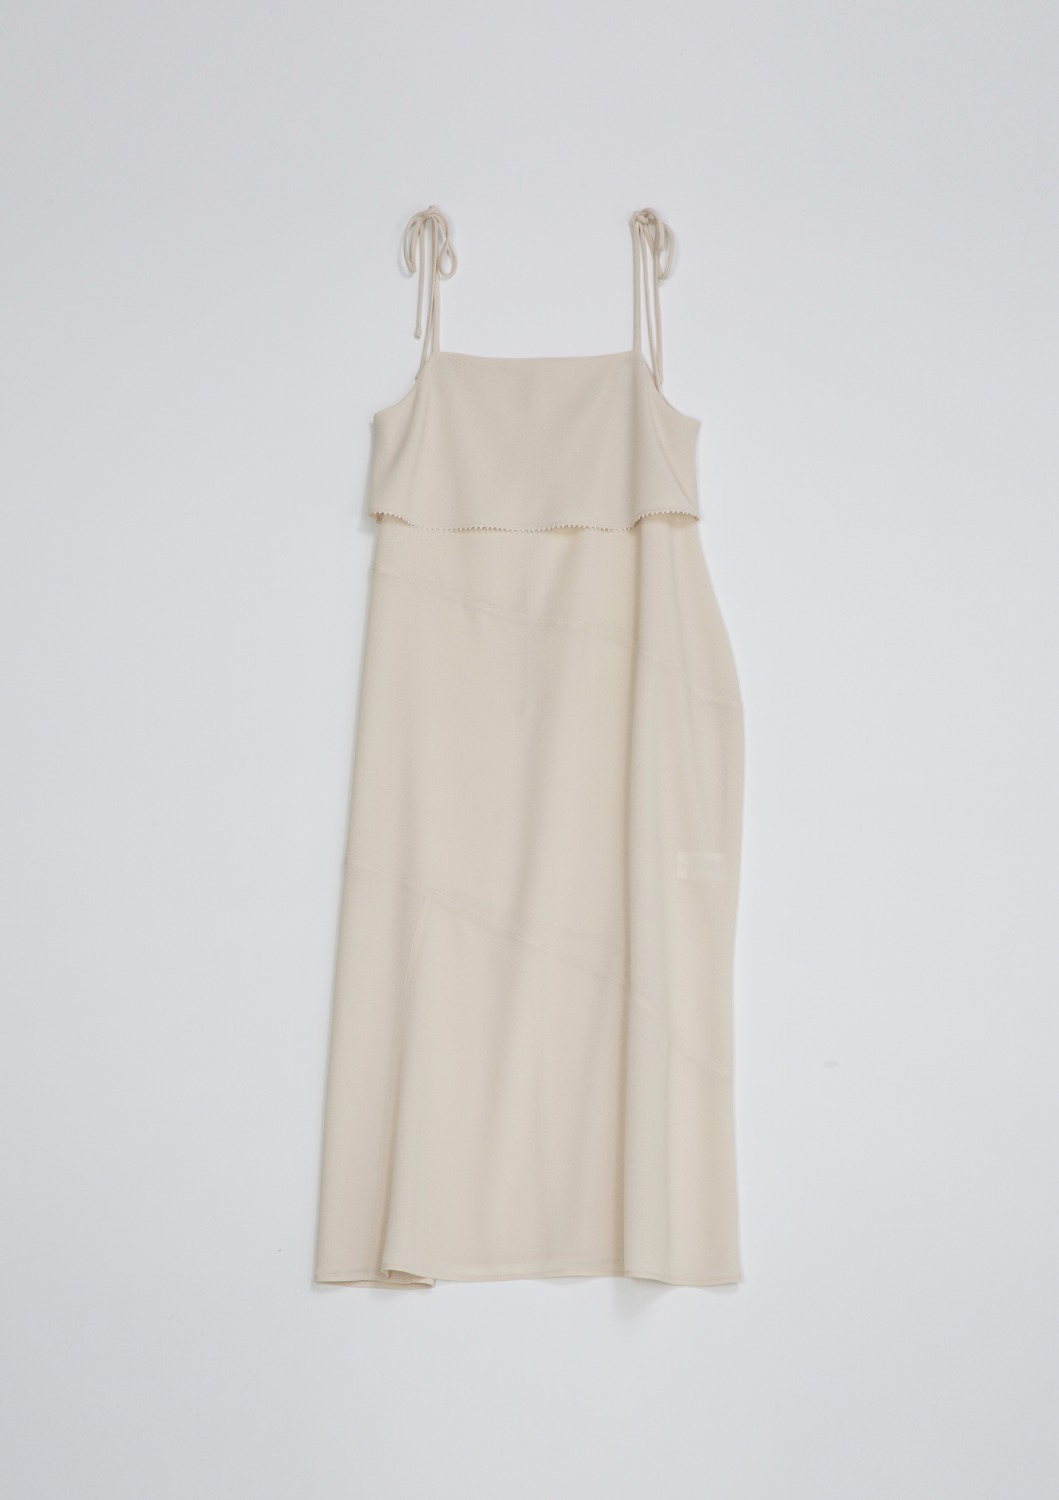 En Fete Slip Dress - Cream Crepe